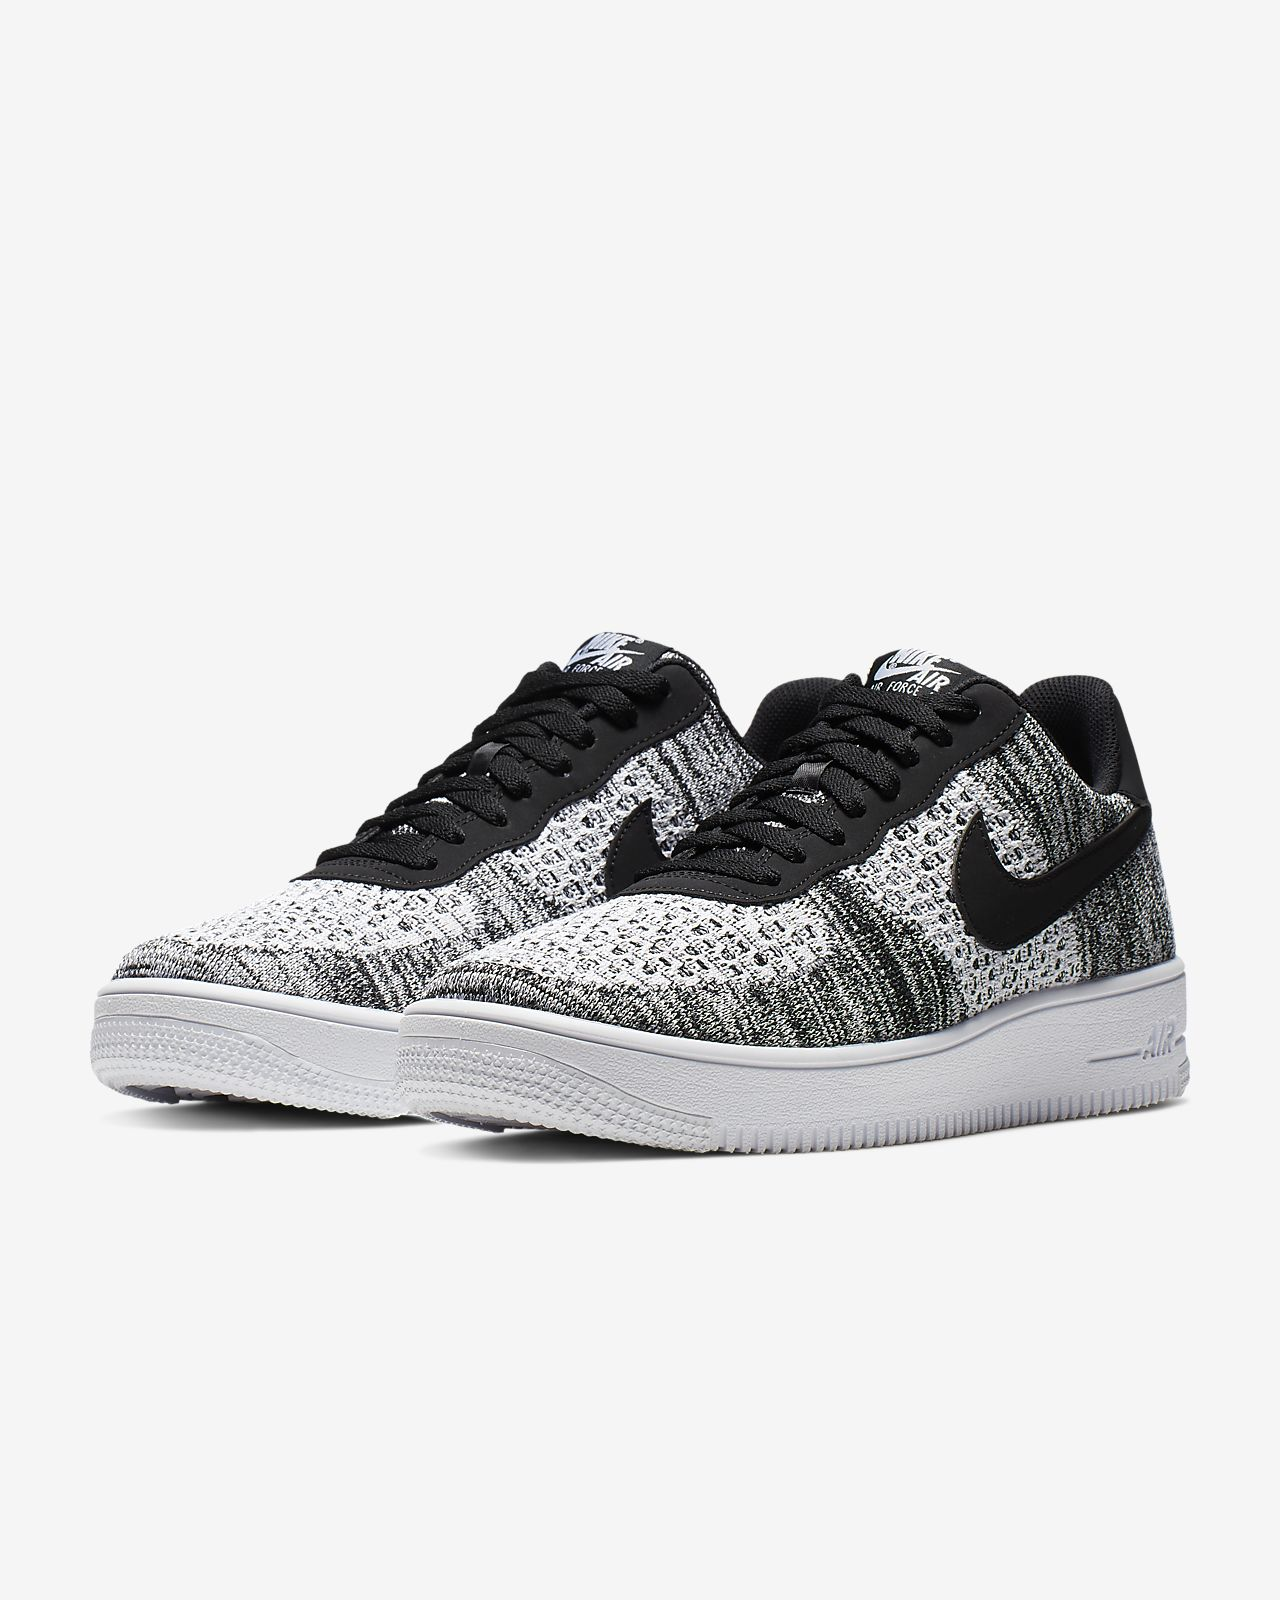 nike air force 1 flyknit 2.0 homme blanche